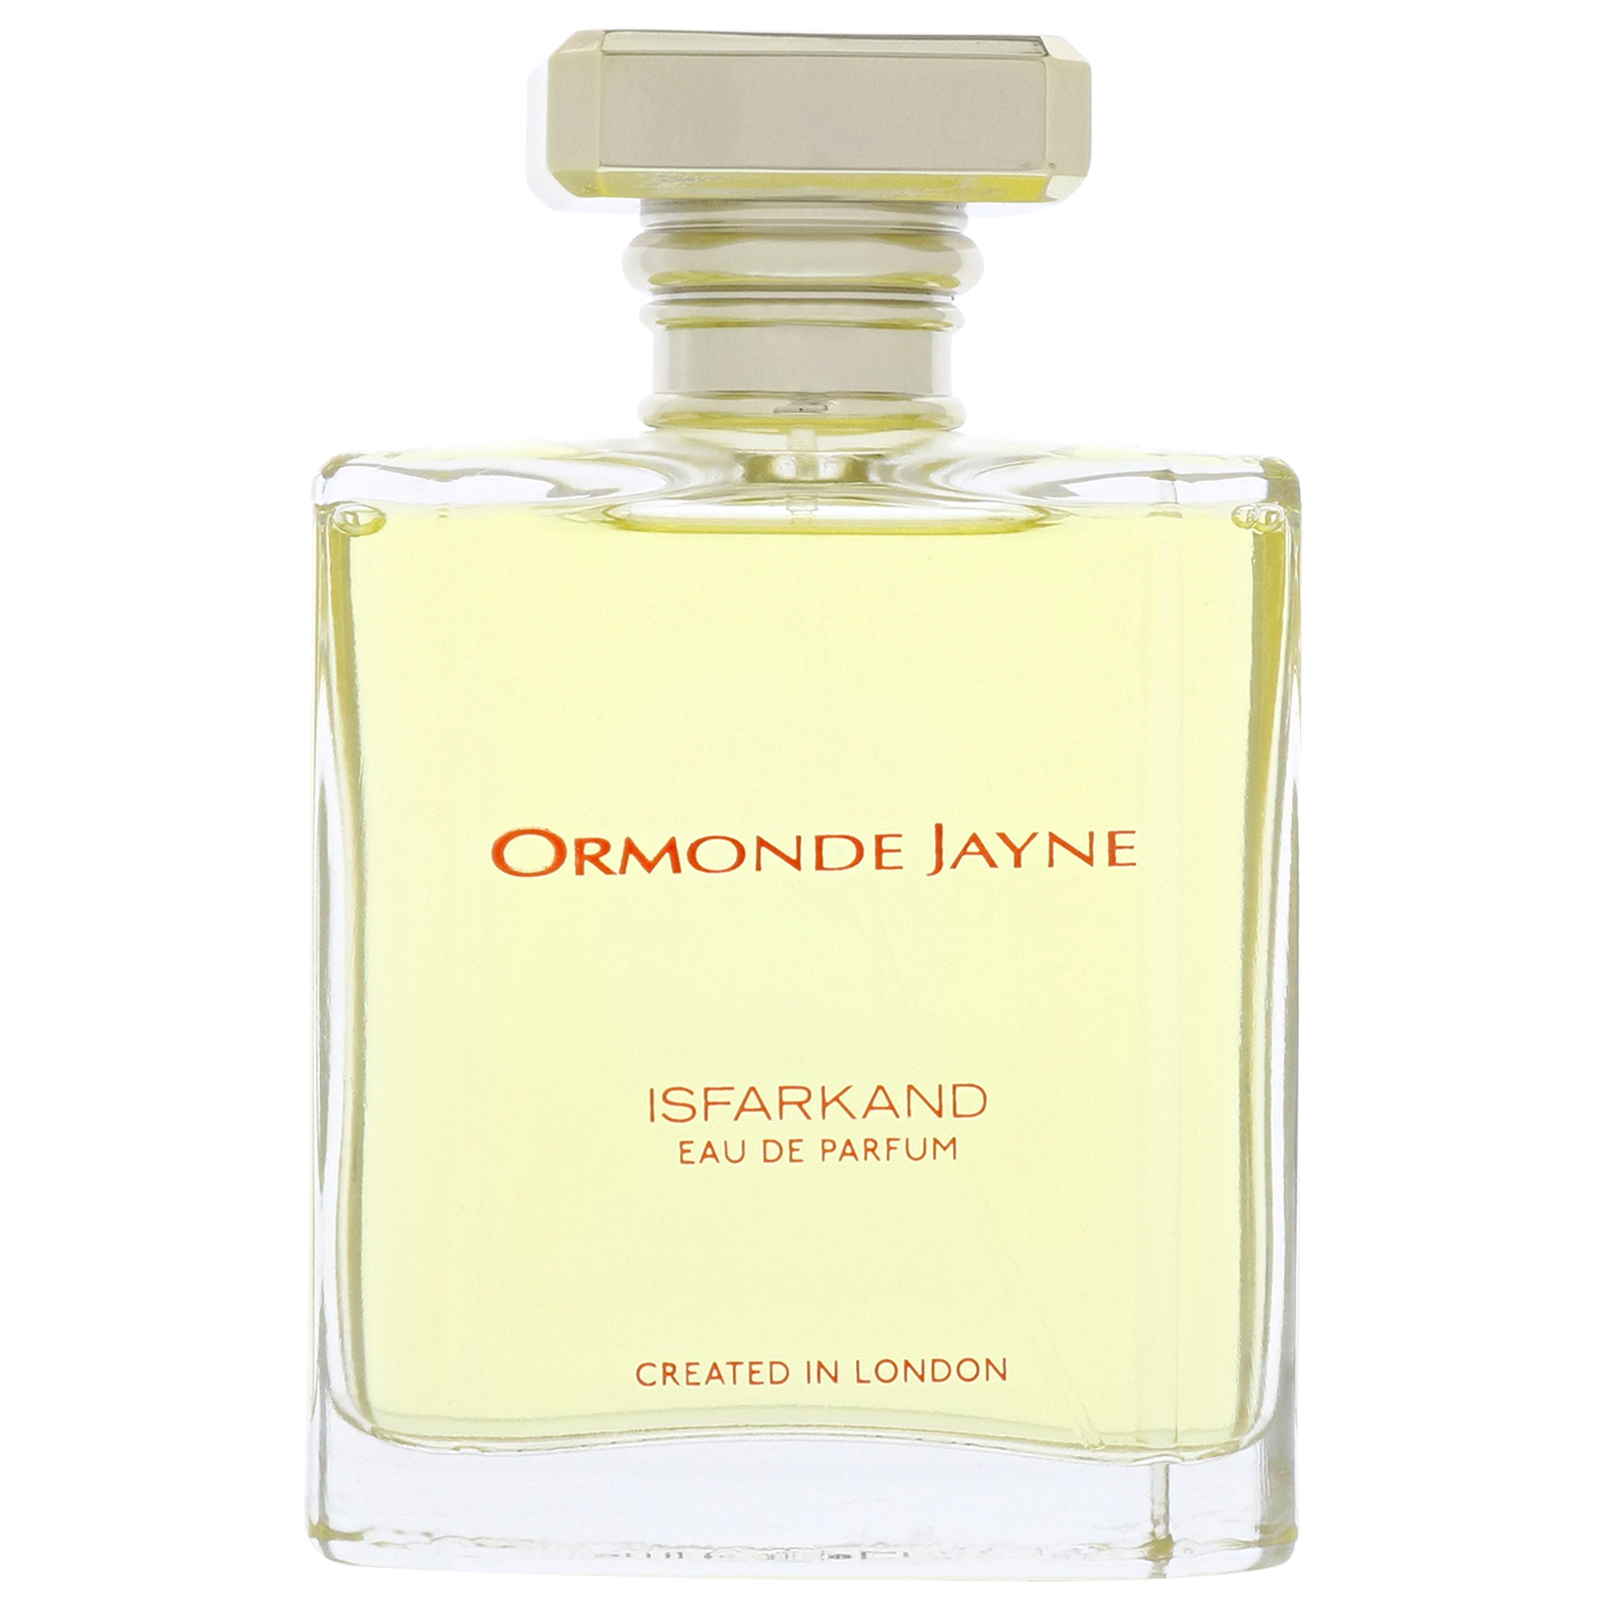 Ormonde Jayne Isfarkand Eau de Parfum Spray 120ml